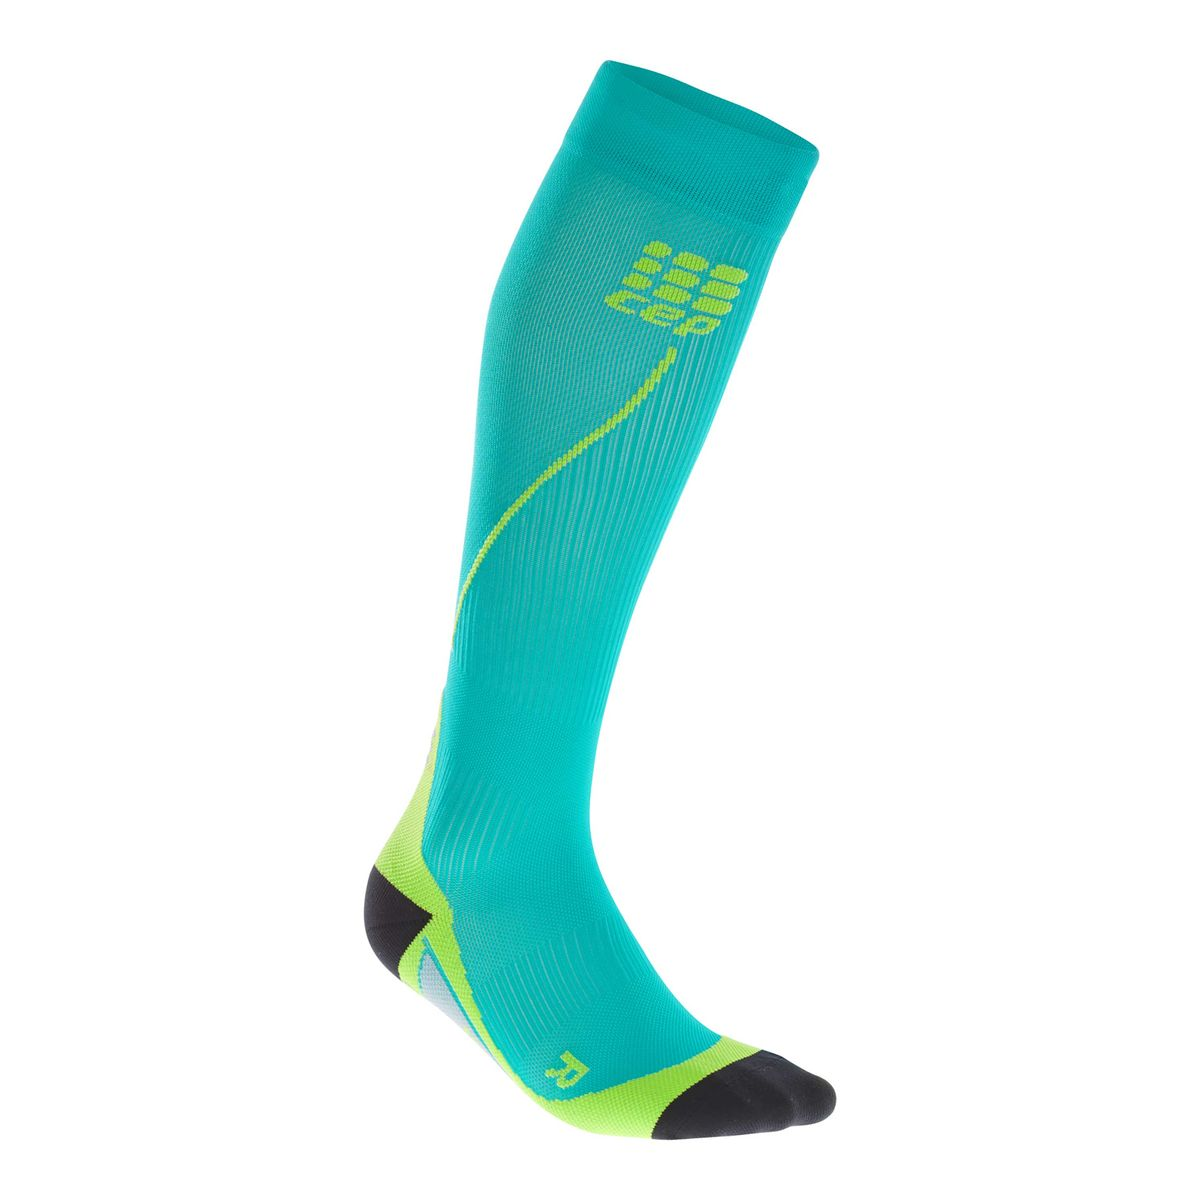 cep RUN 2.0 compression socks | Compression